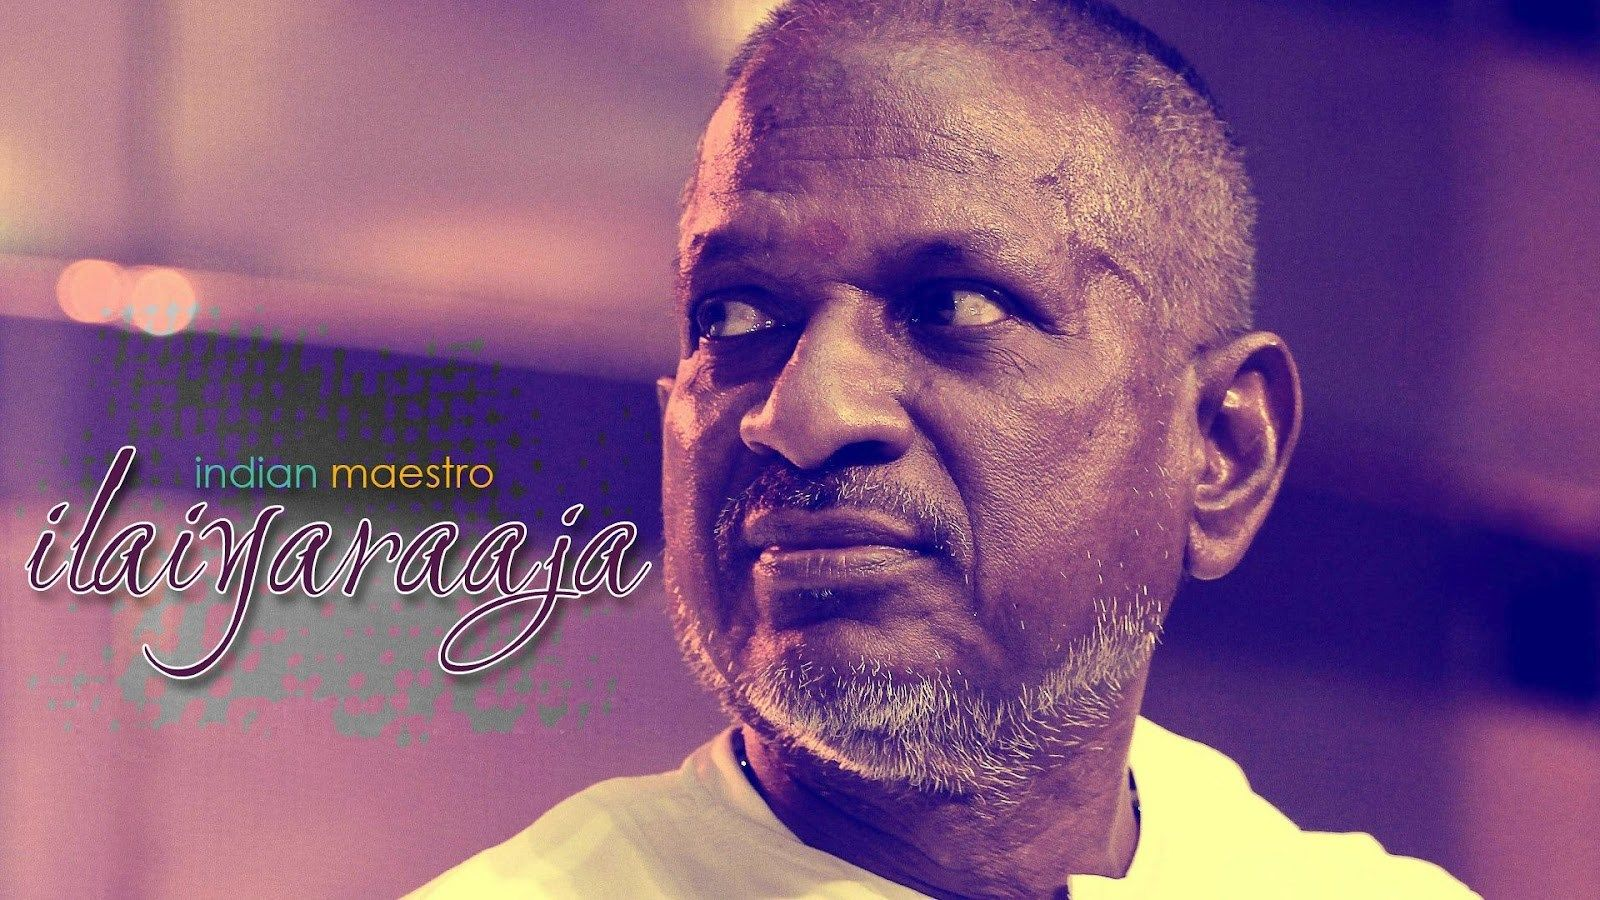 Ilayaraja Wallpaper Ilayaraja HD Wallpapers Filmibeat